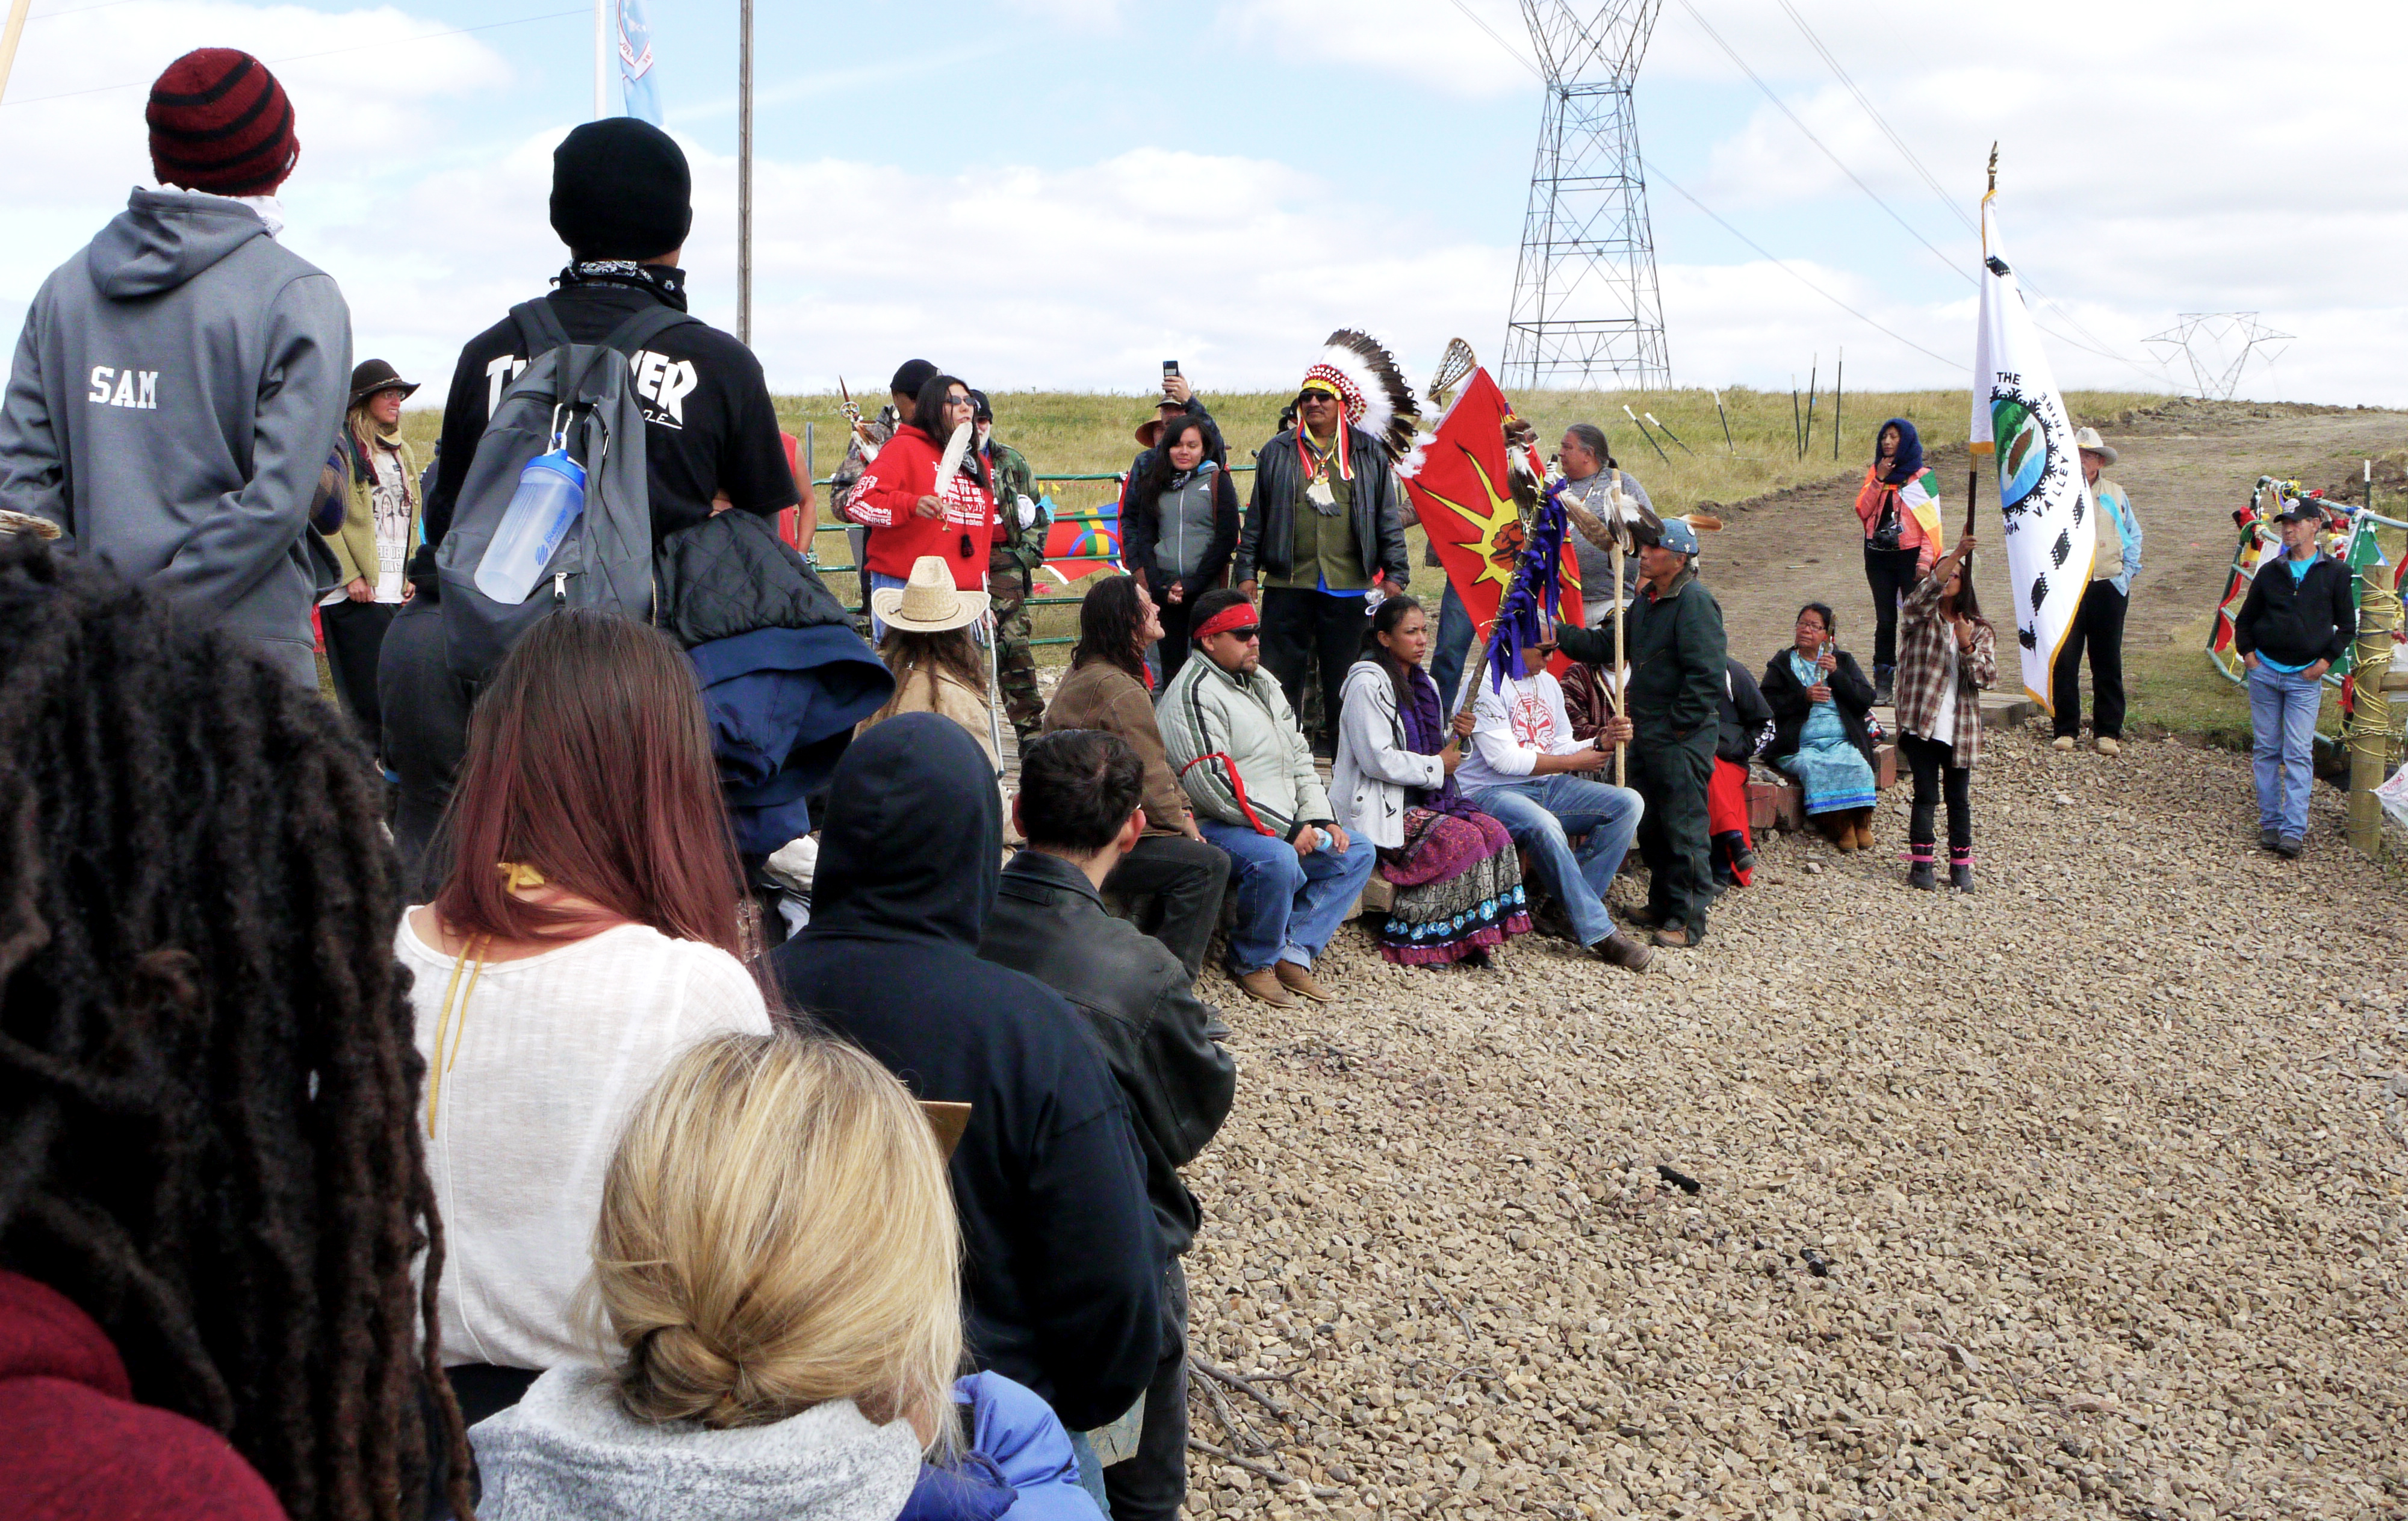 """A """"speak-out at the road to the Dakota Access Pipeline construction site, Sept. 13, 2016. (Sarah Jaffe for BillMoyers.com)"""